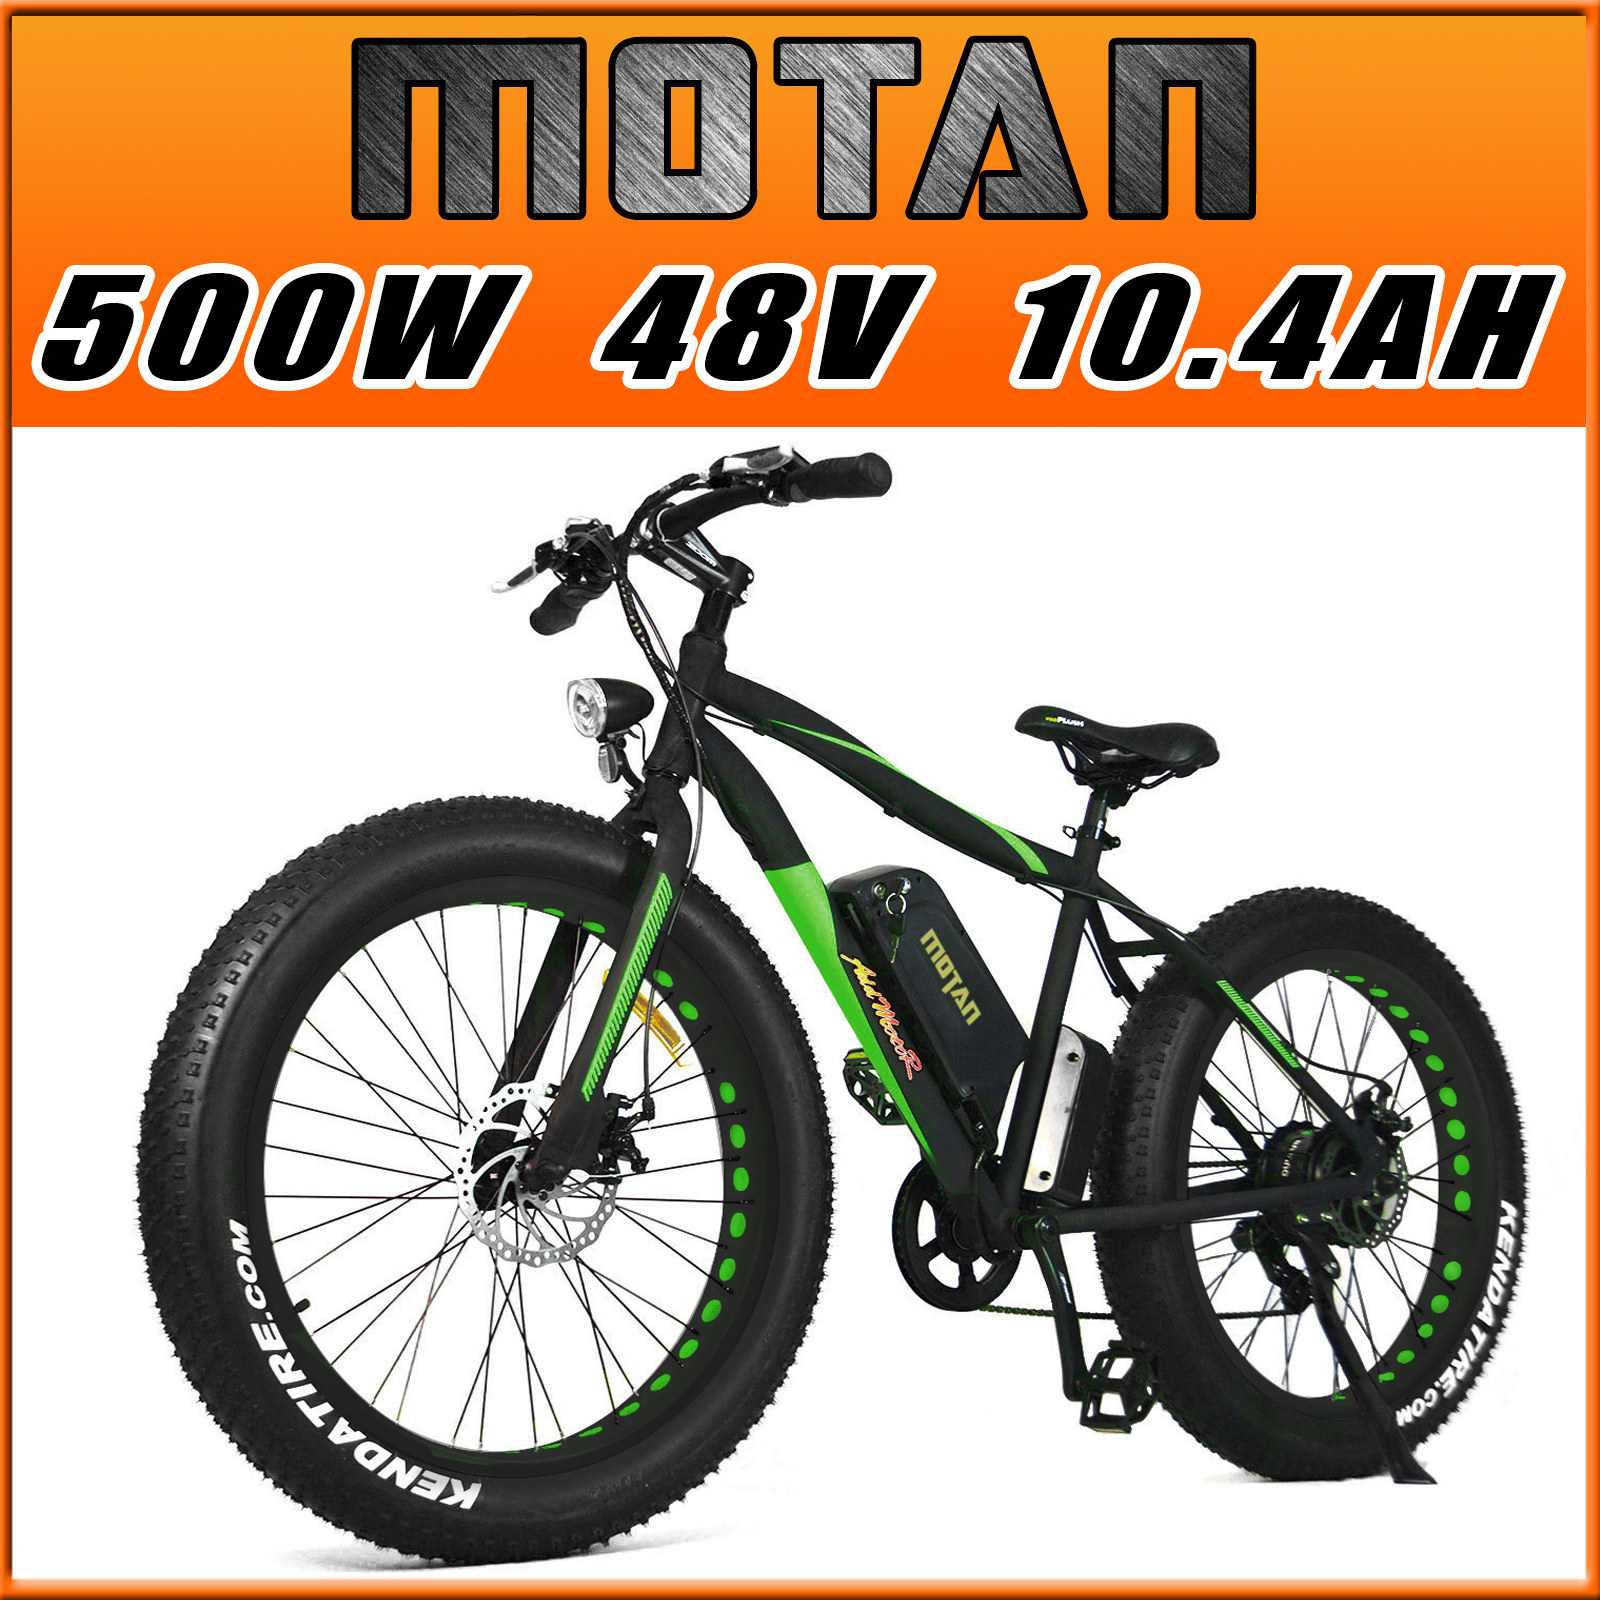 Addmotor MOTAN Fat Tire Electric Bicycles Snow Bicycle M-550 48V 500W 10.4AH Battery Mountain Bicycle Shimano 7 Speeds